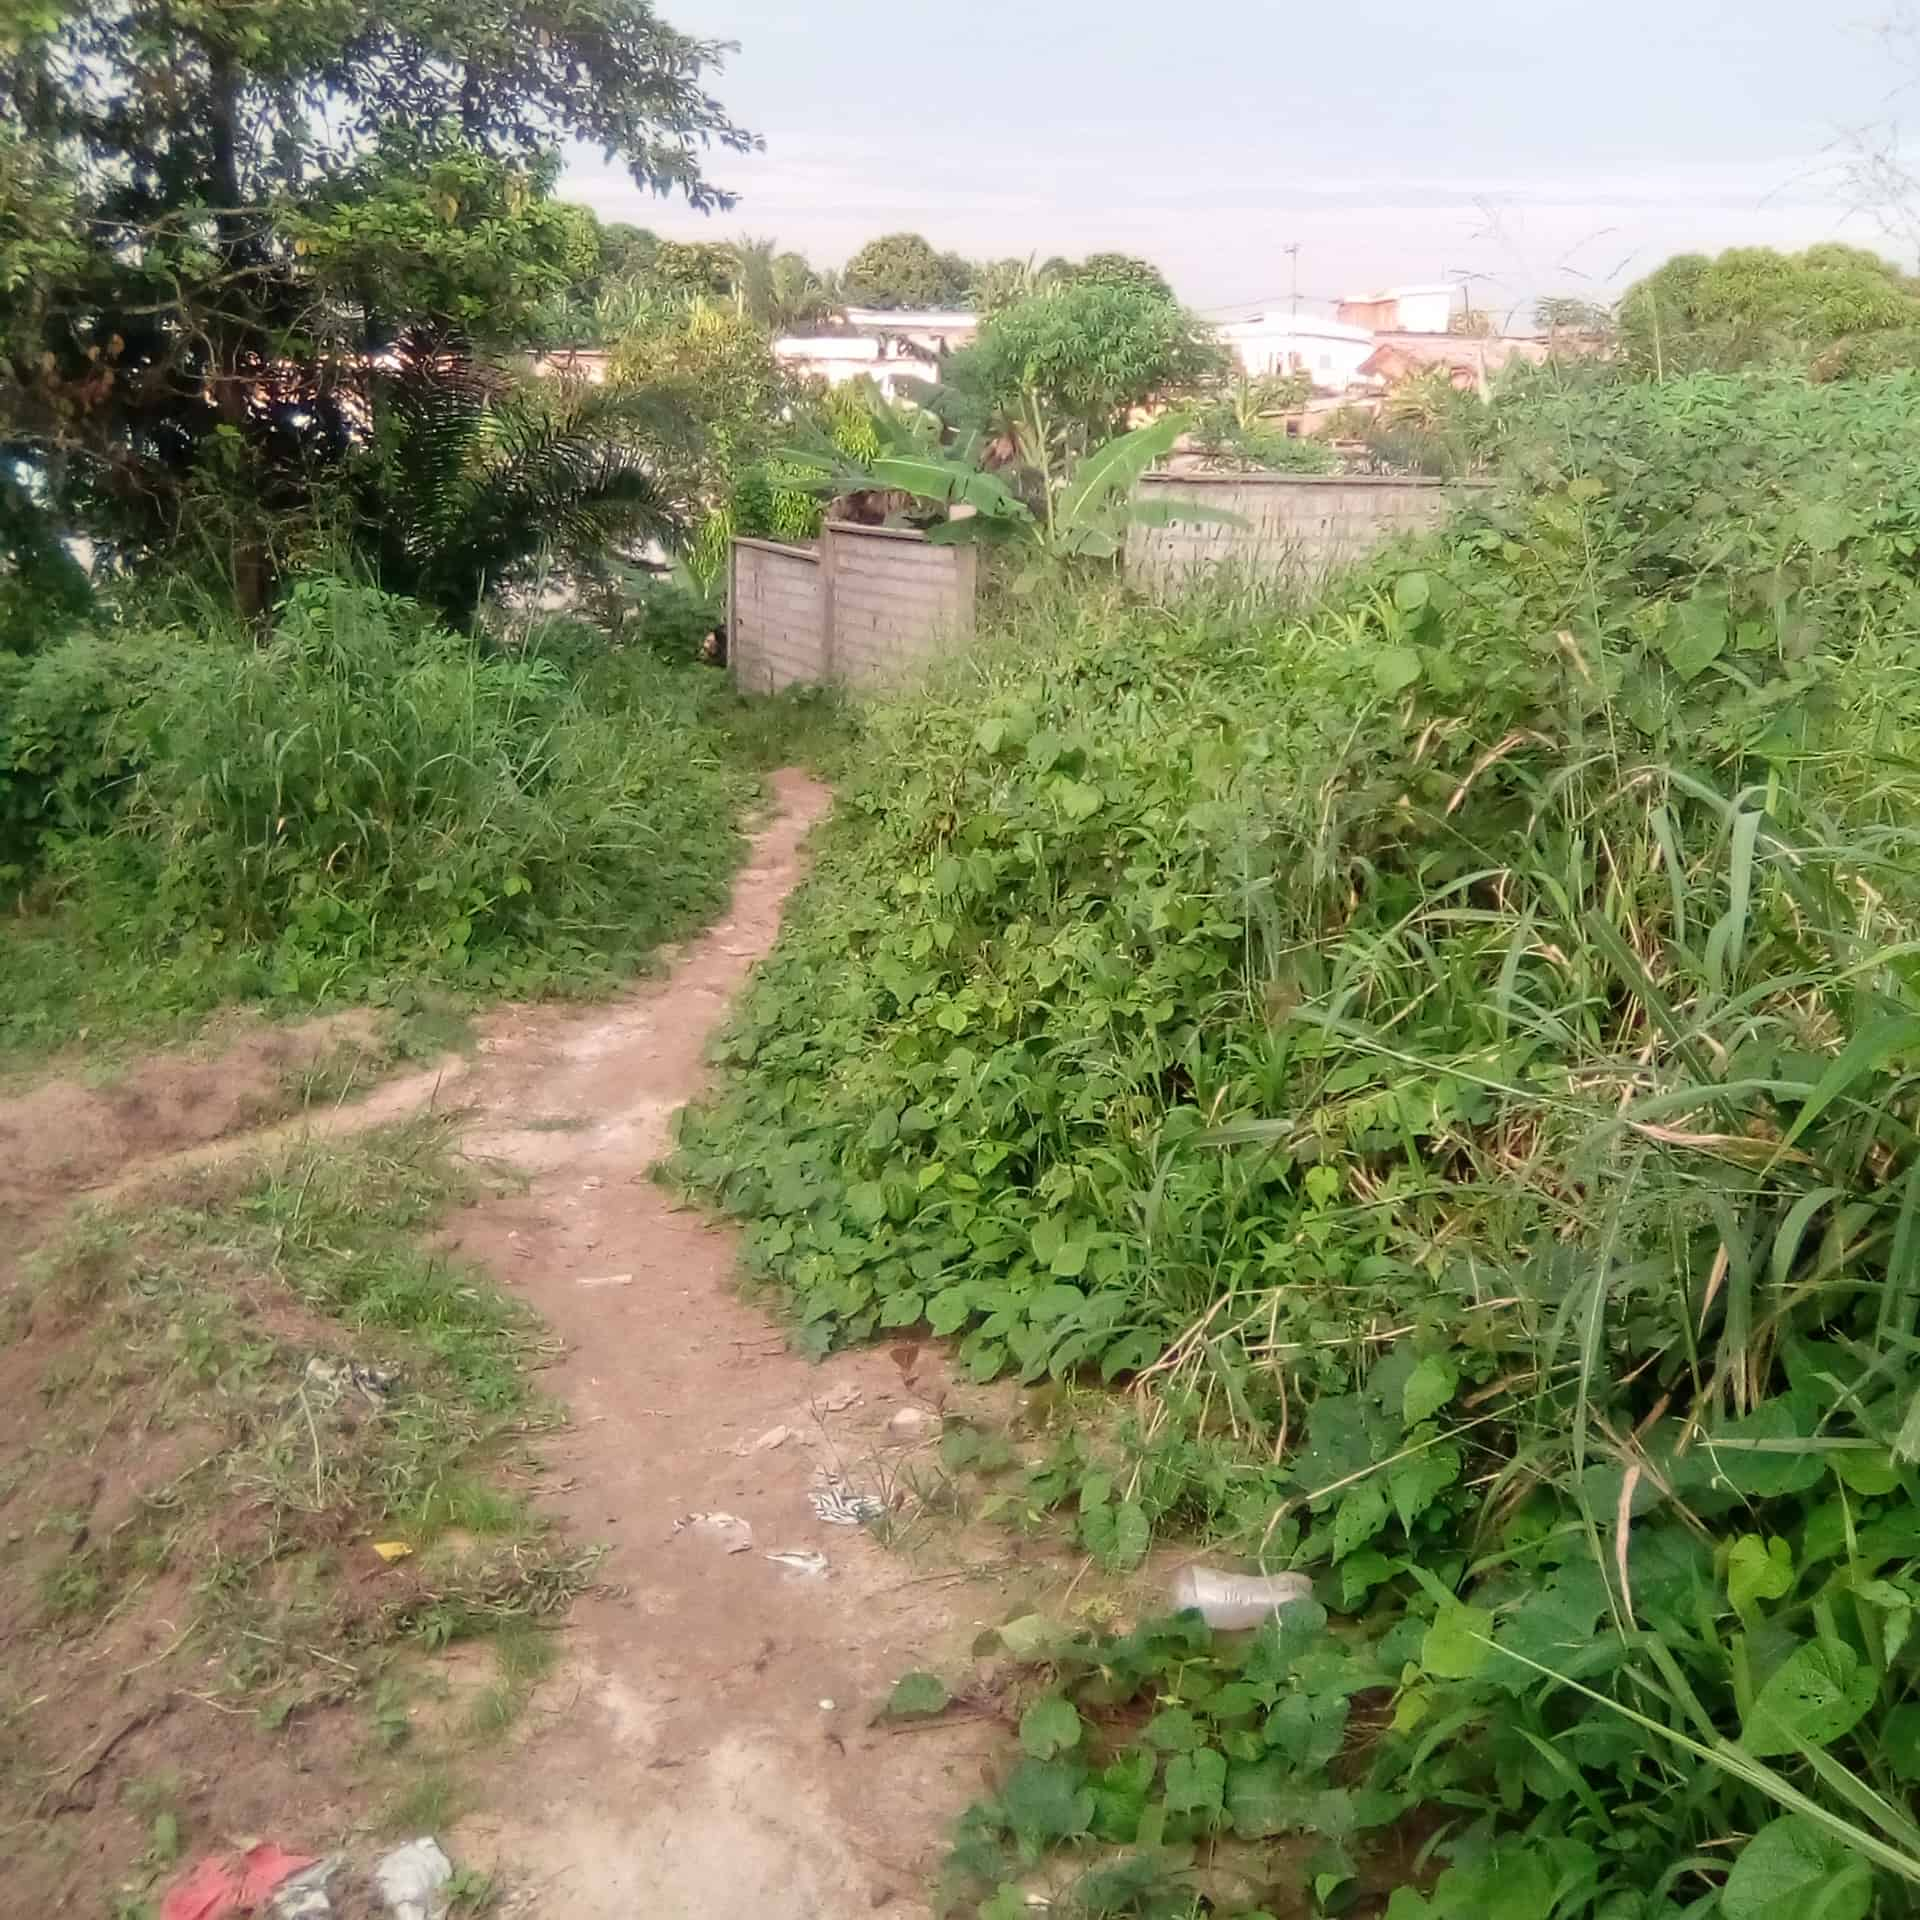 Land for sale at Douala, Logbaba, Jardin - 512 m2 - 14 336 000 FCFA